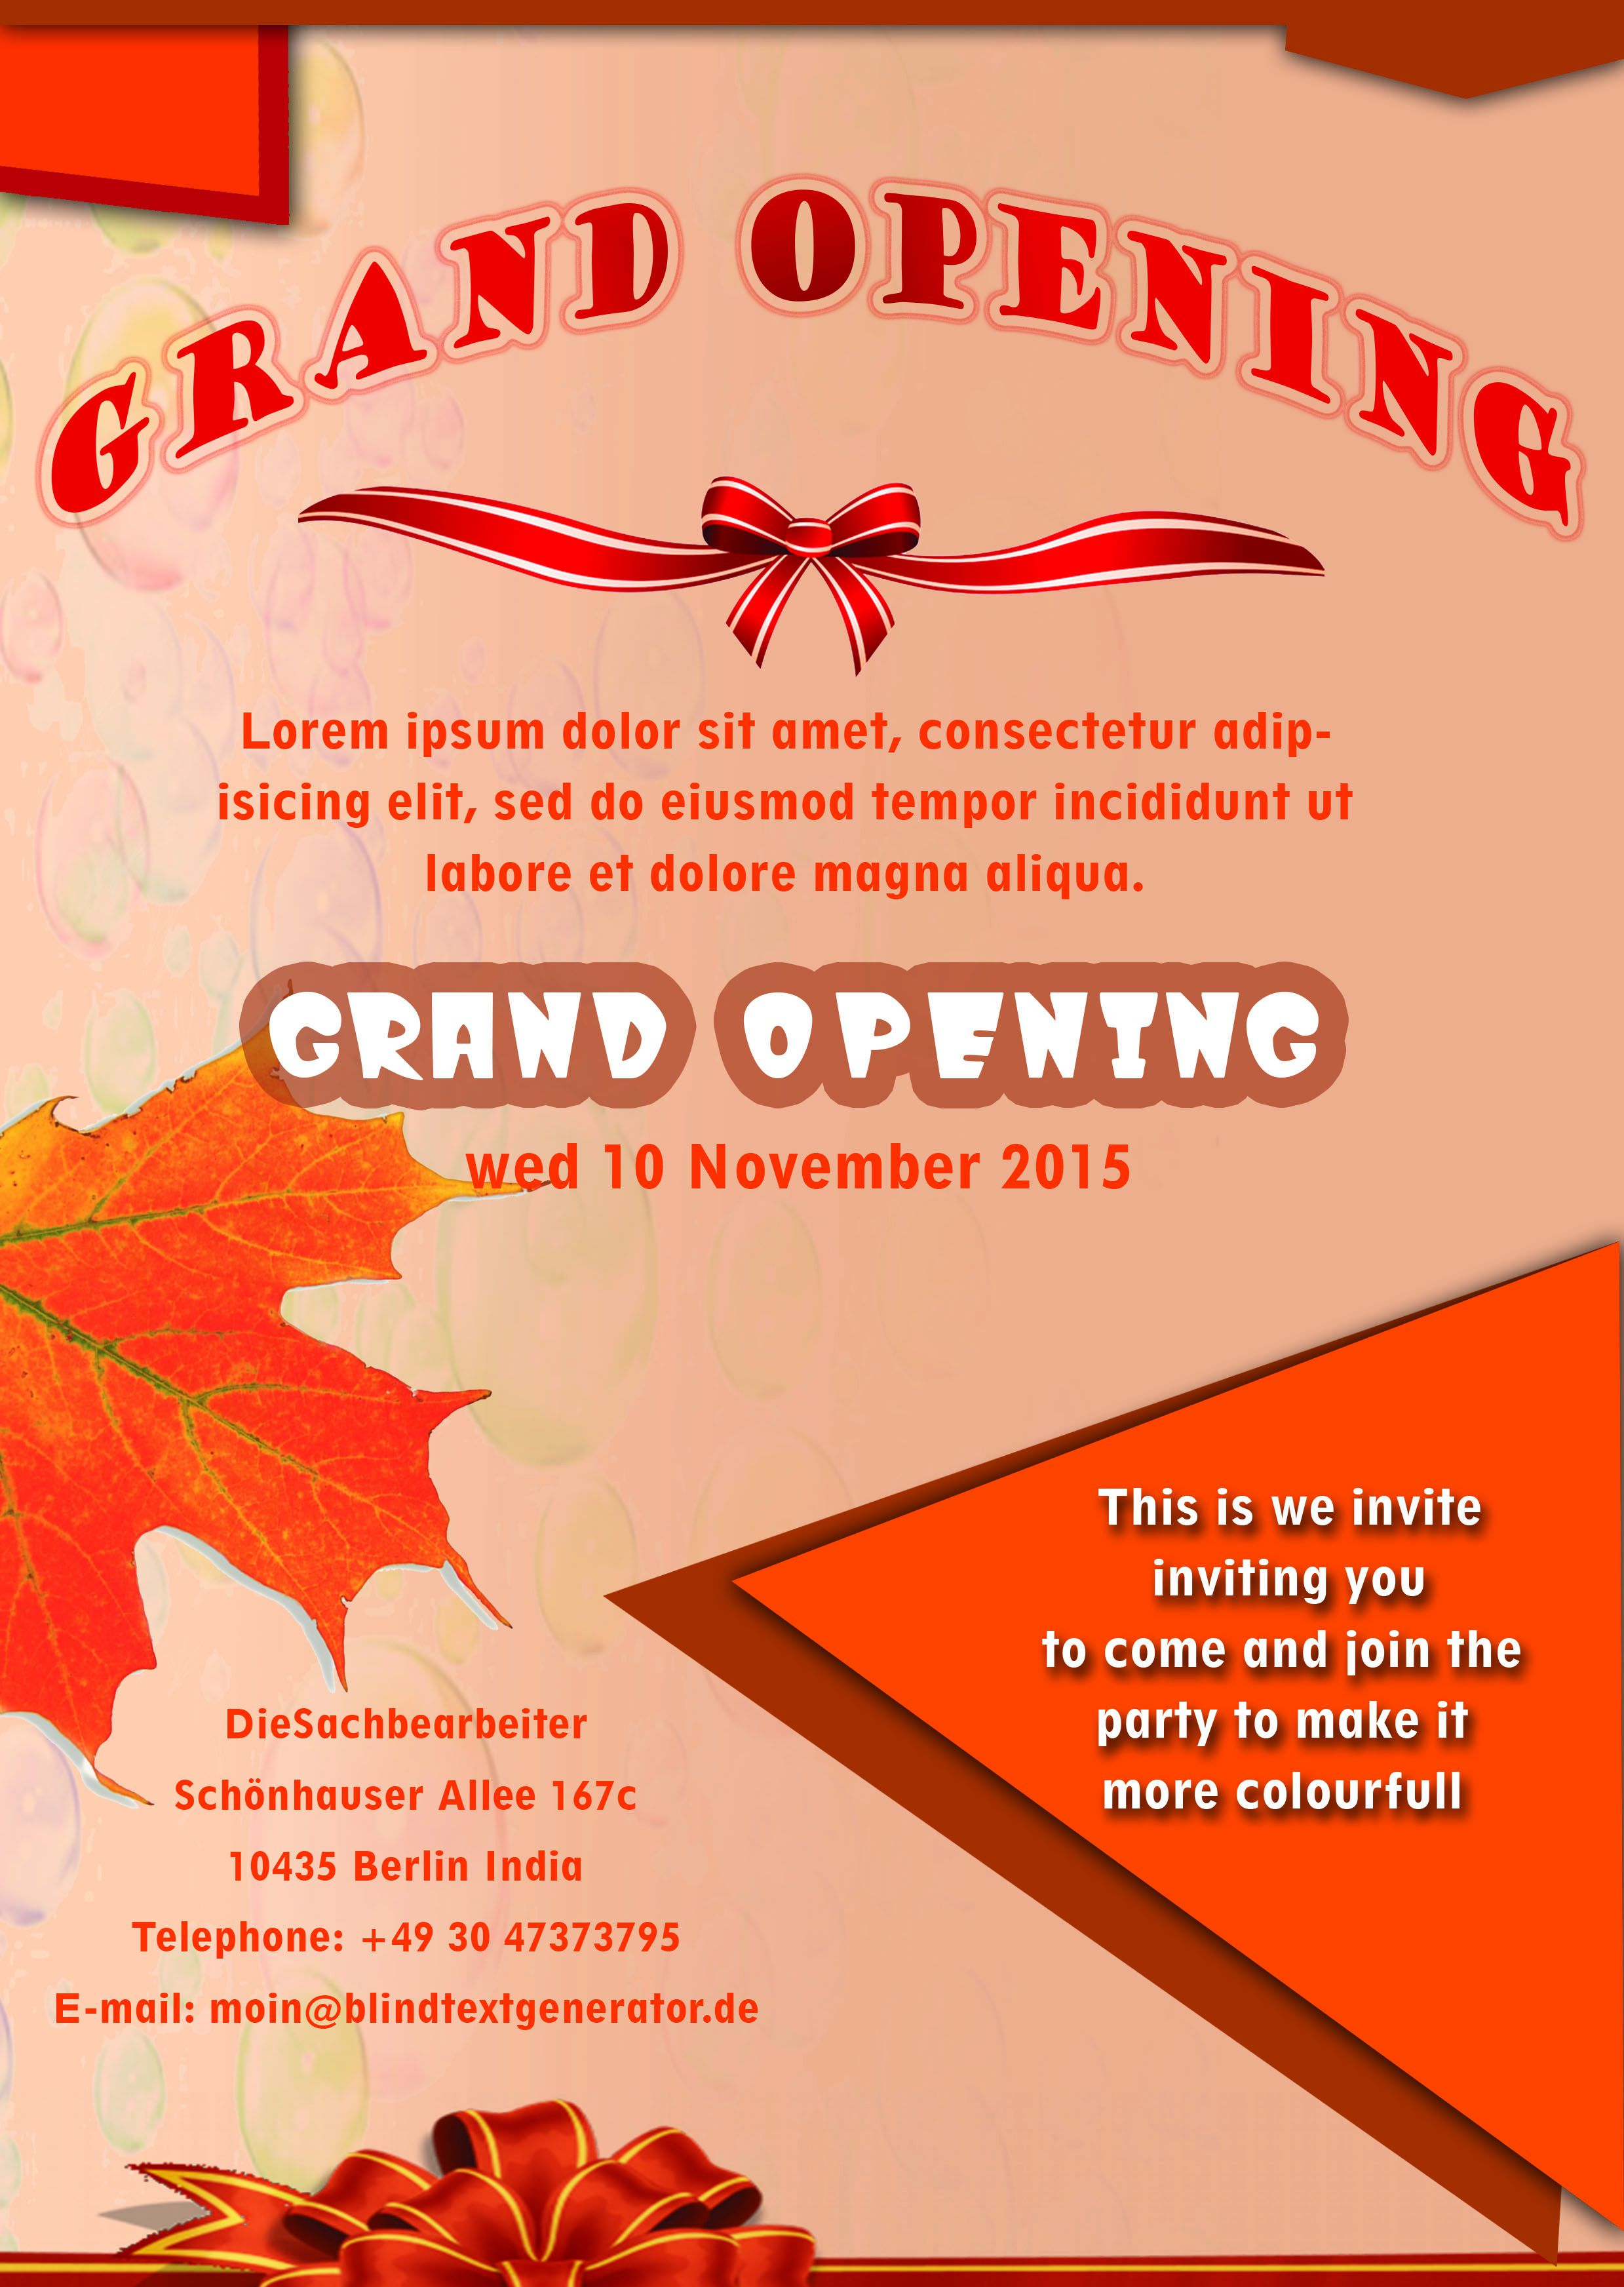 20 Grand Opening Flyer Templates Free Demplates